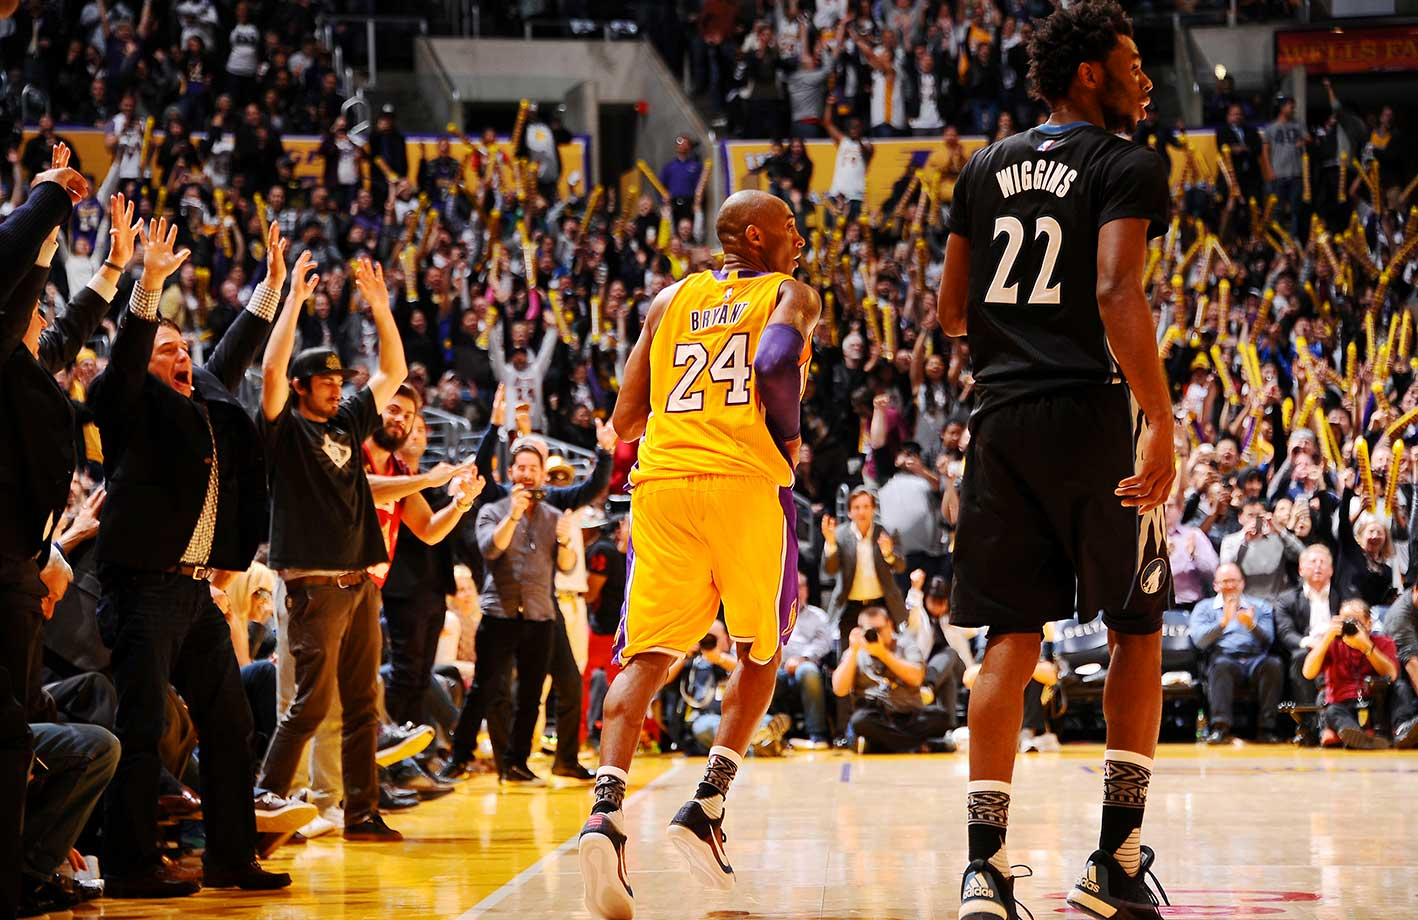 The crowd cheers Kobe Bryant on a night in which he scored a season-high 38 points in a 119-115 victory over the Minnesota Timberwolves. Kobe made 7-of-11 three-pointers for the first time since a March 28, 2008 game against the Memphis Grizzlies.